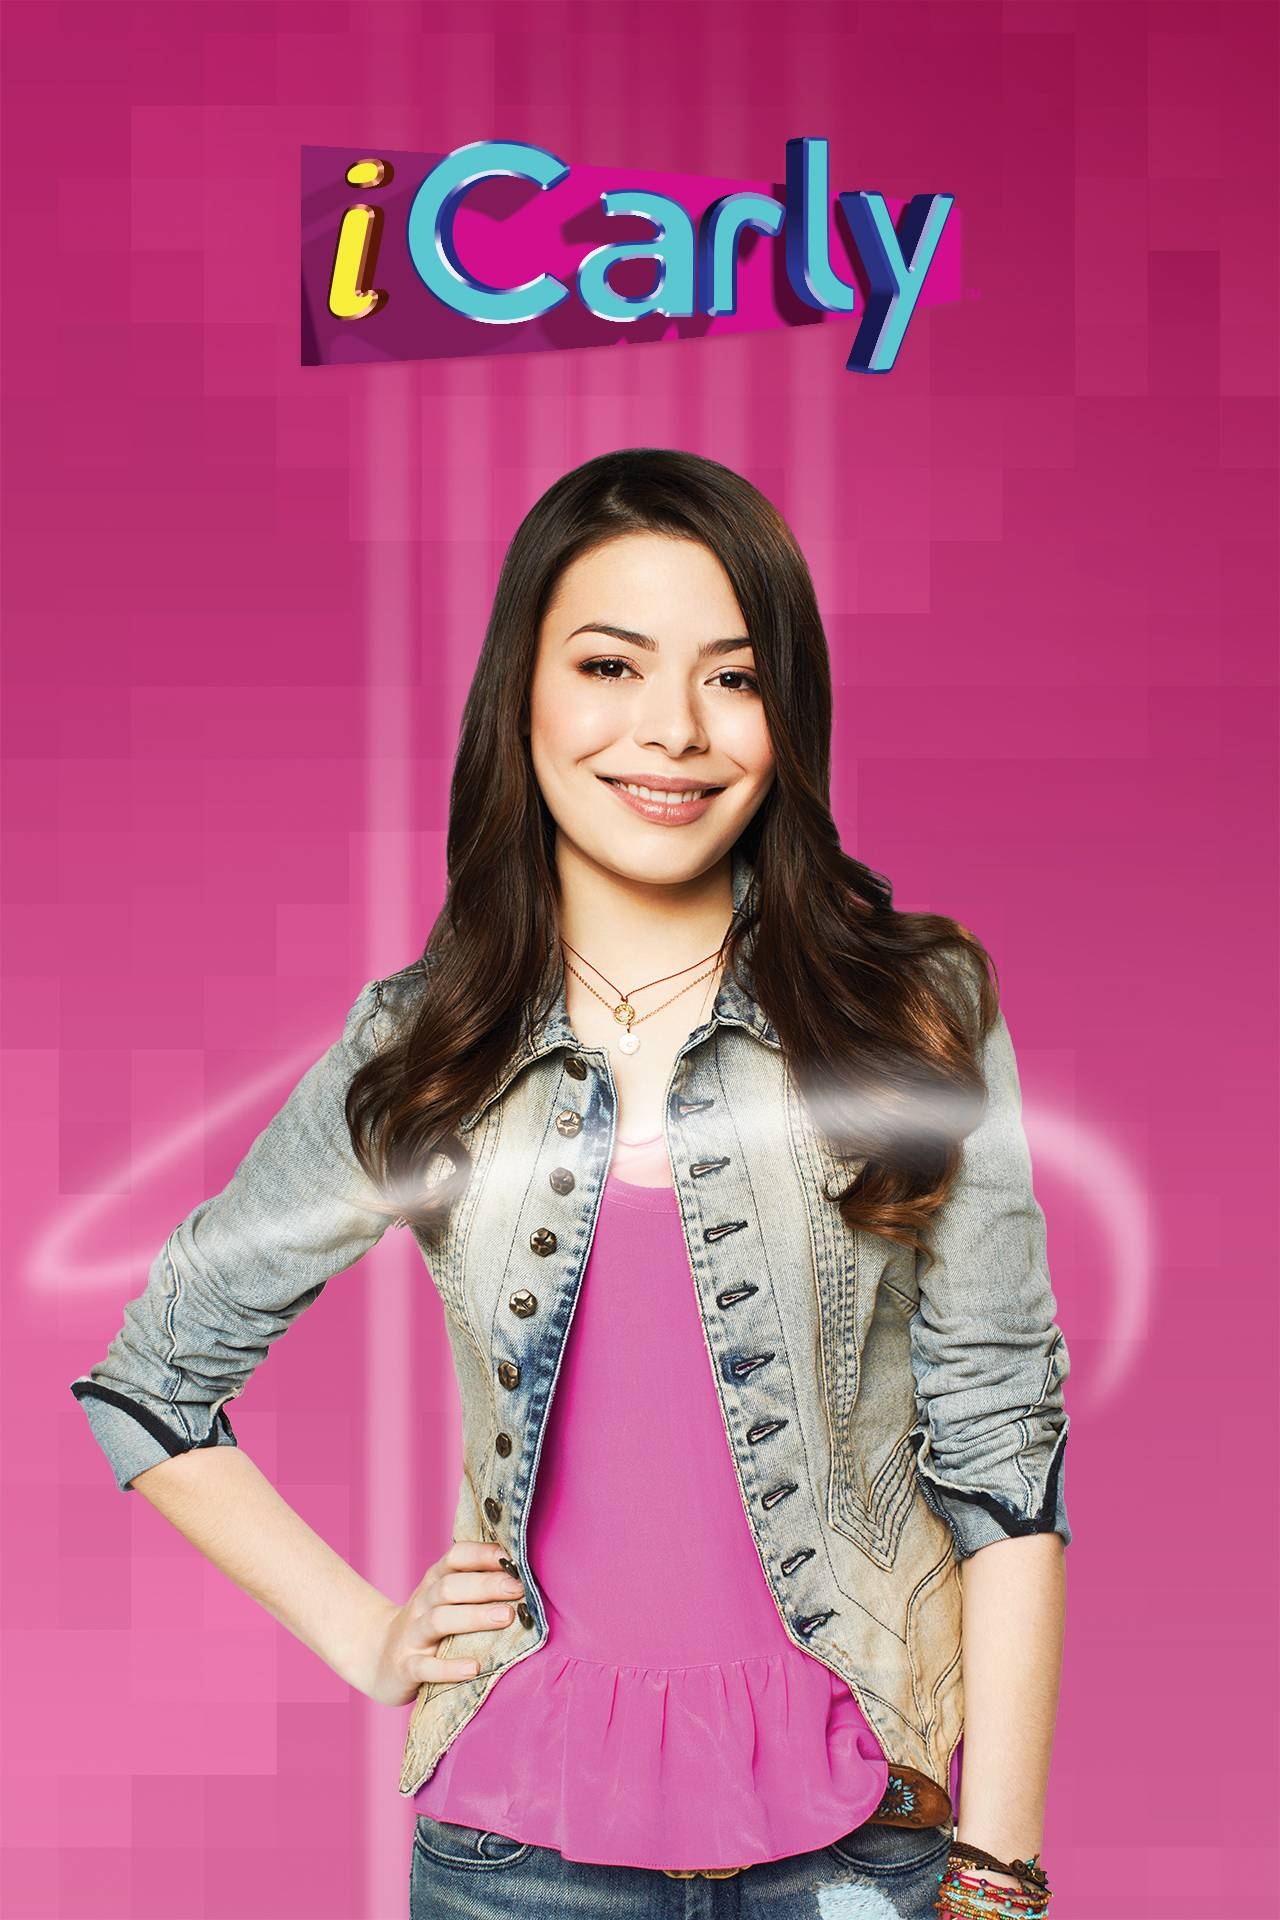 Icarly Doblaje Wiki Fandom Powered By Wikia